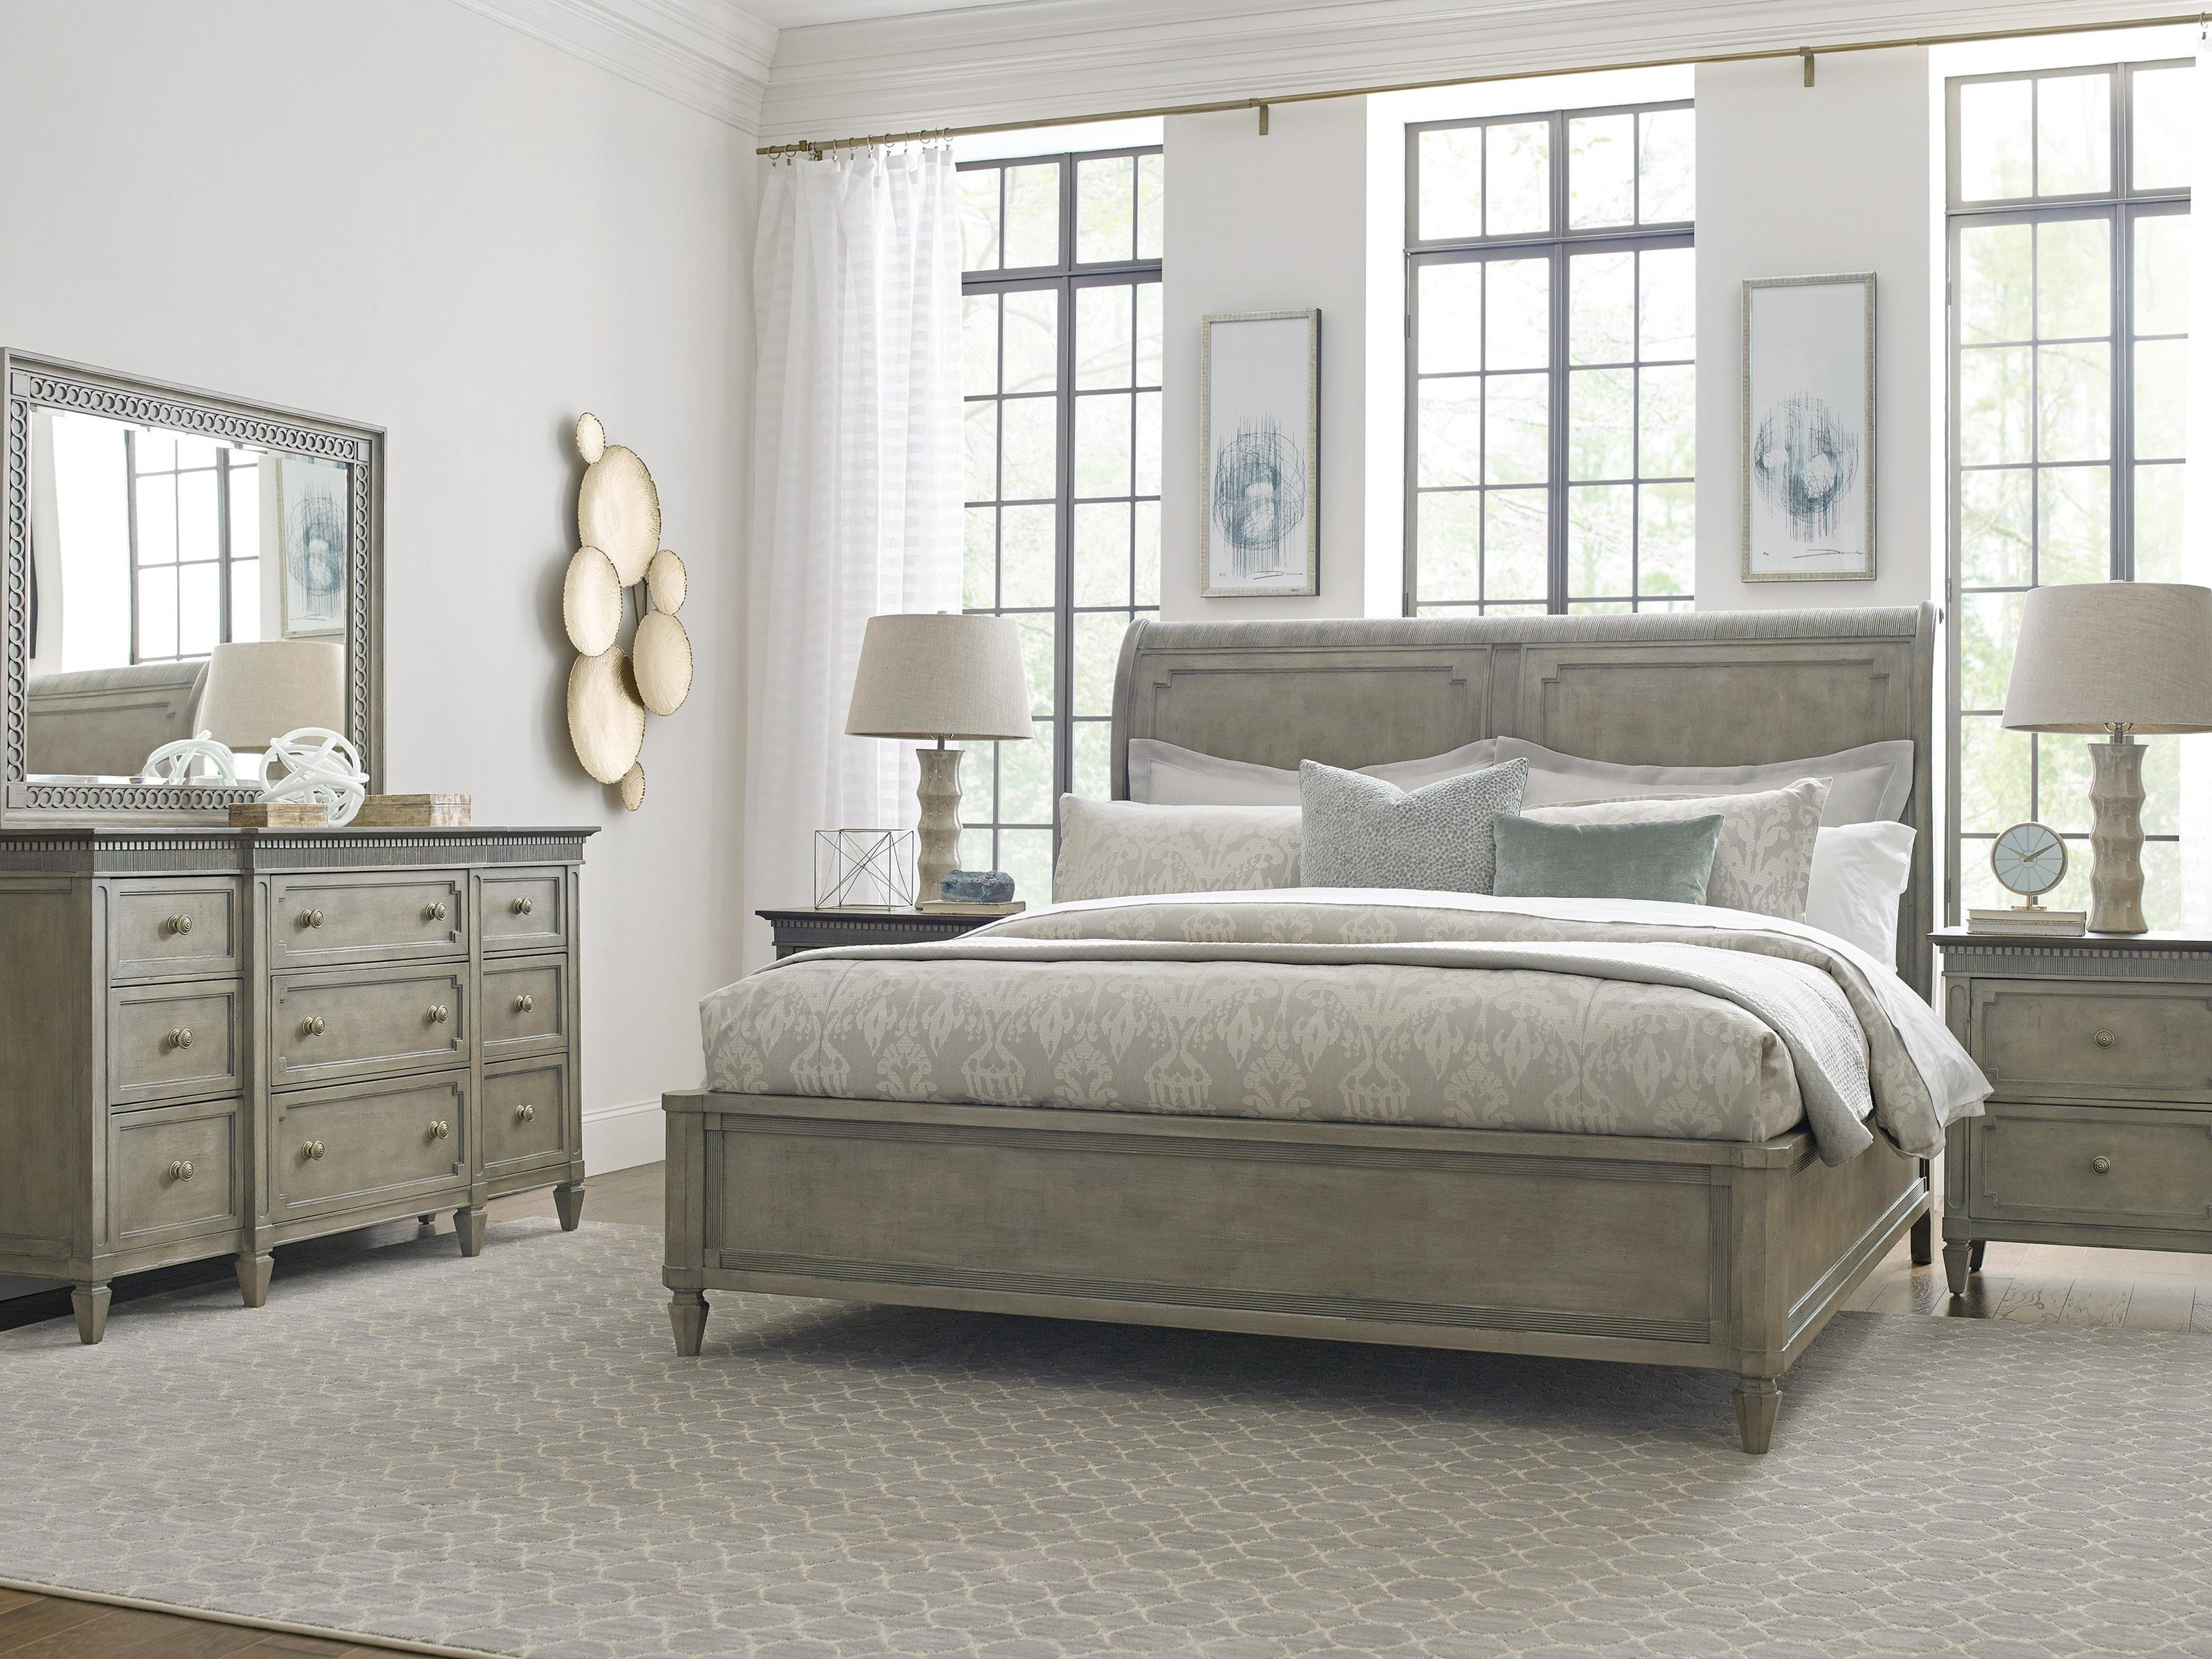 Savona Queen Bed, Nightstand, Dresser and Mirror by American Drew at Johnny Janosik